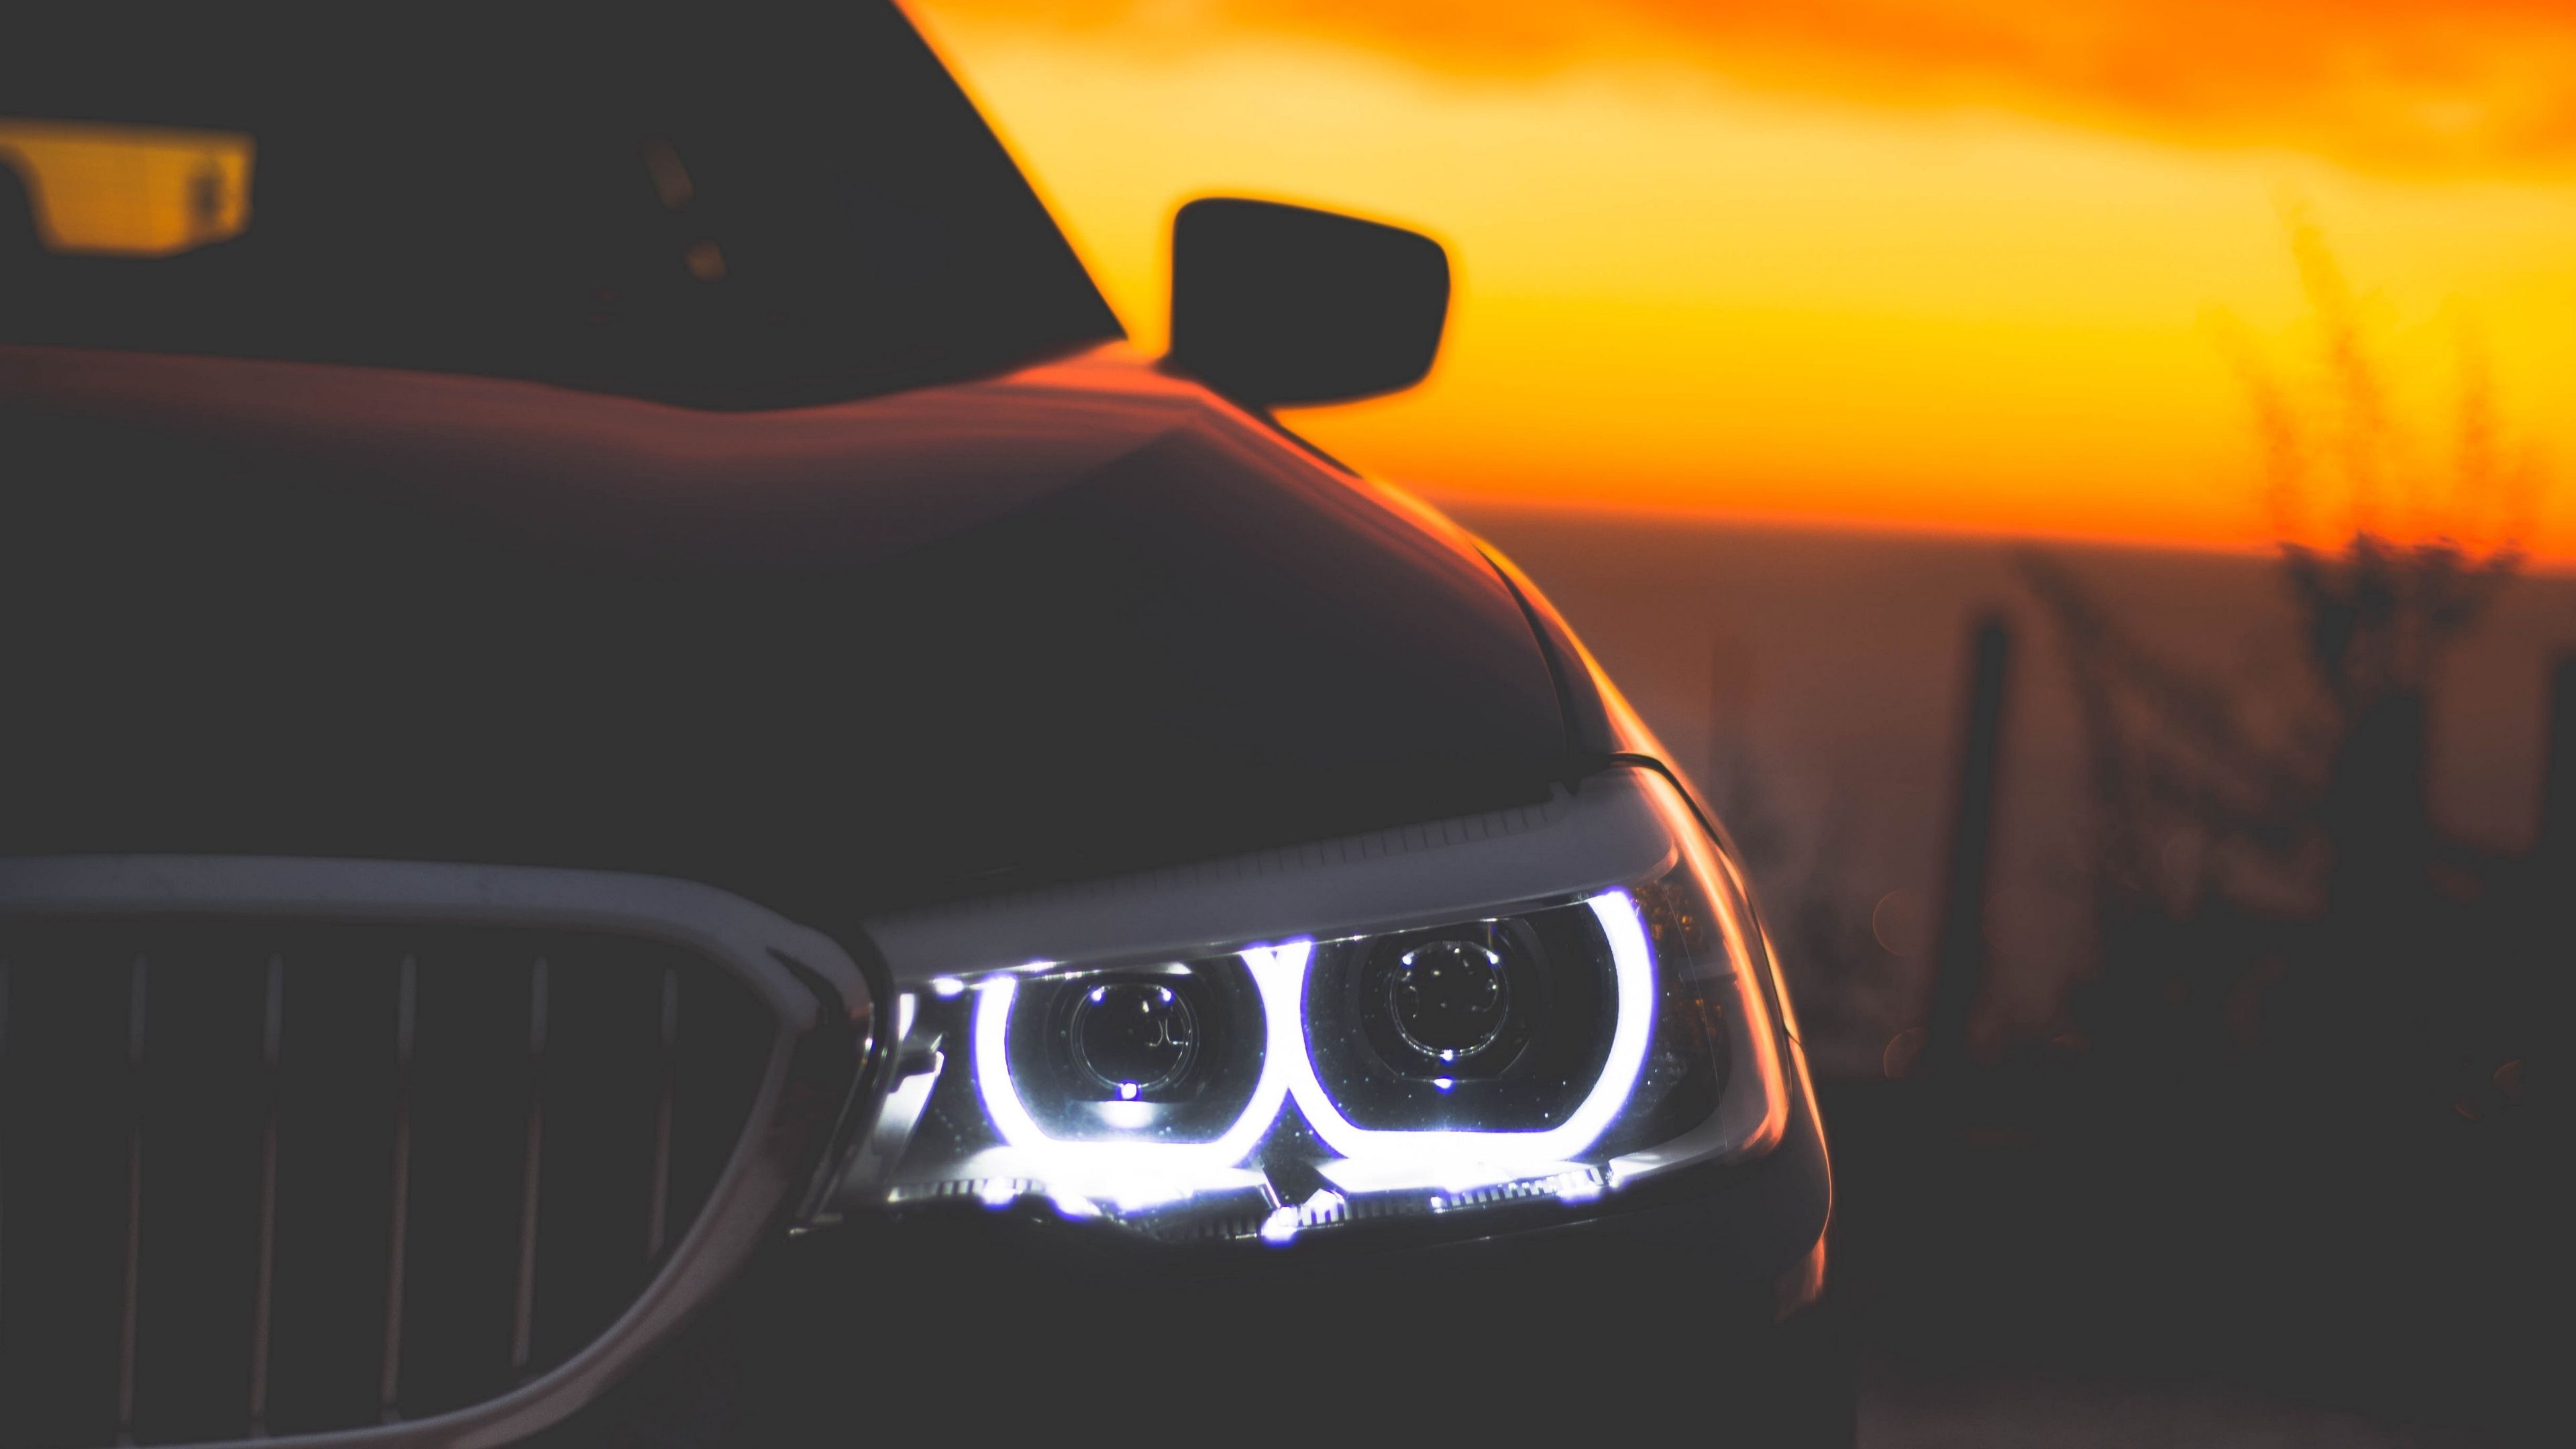 Cool collections of 4k car wallpapers for desktop for desktop laptop and mobiles. Bmw Car Hd Wallpaper For Laptop